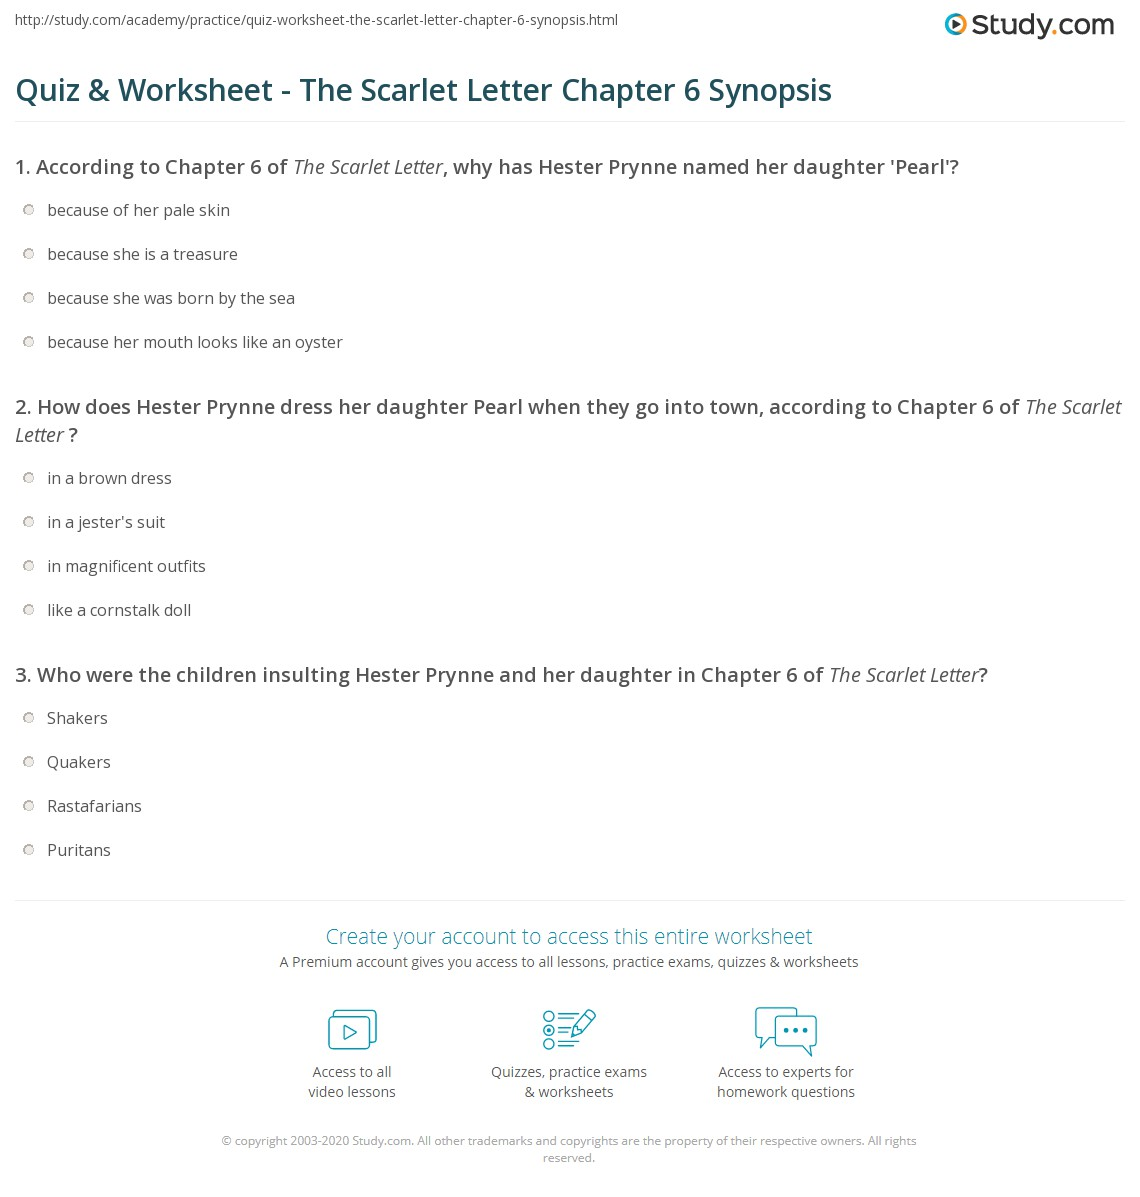 the scarlet letter chapter 6 quiz amp worksheet the scarlet letter chapter 6 synopsis 47188